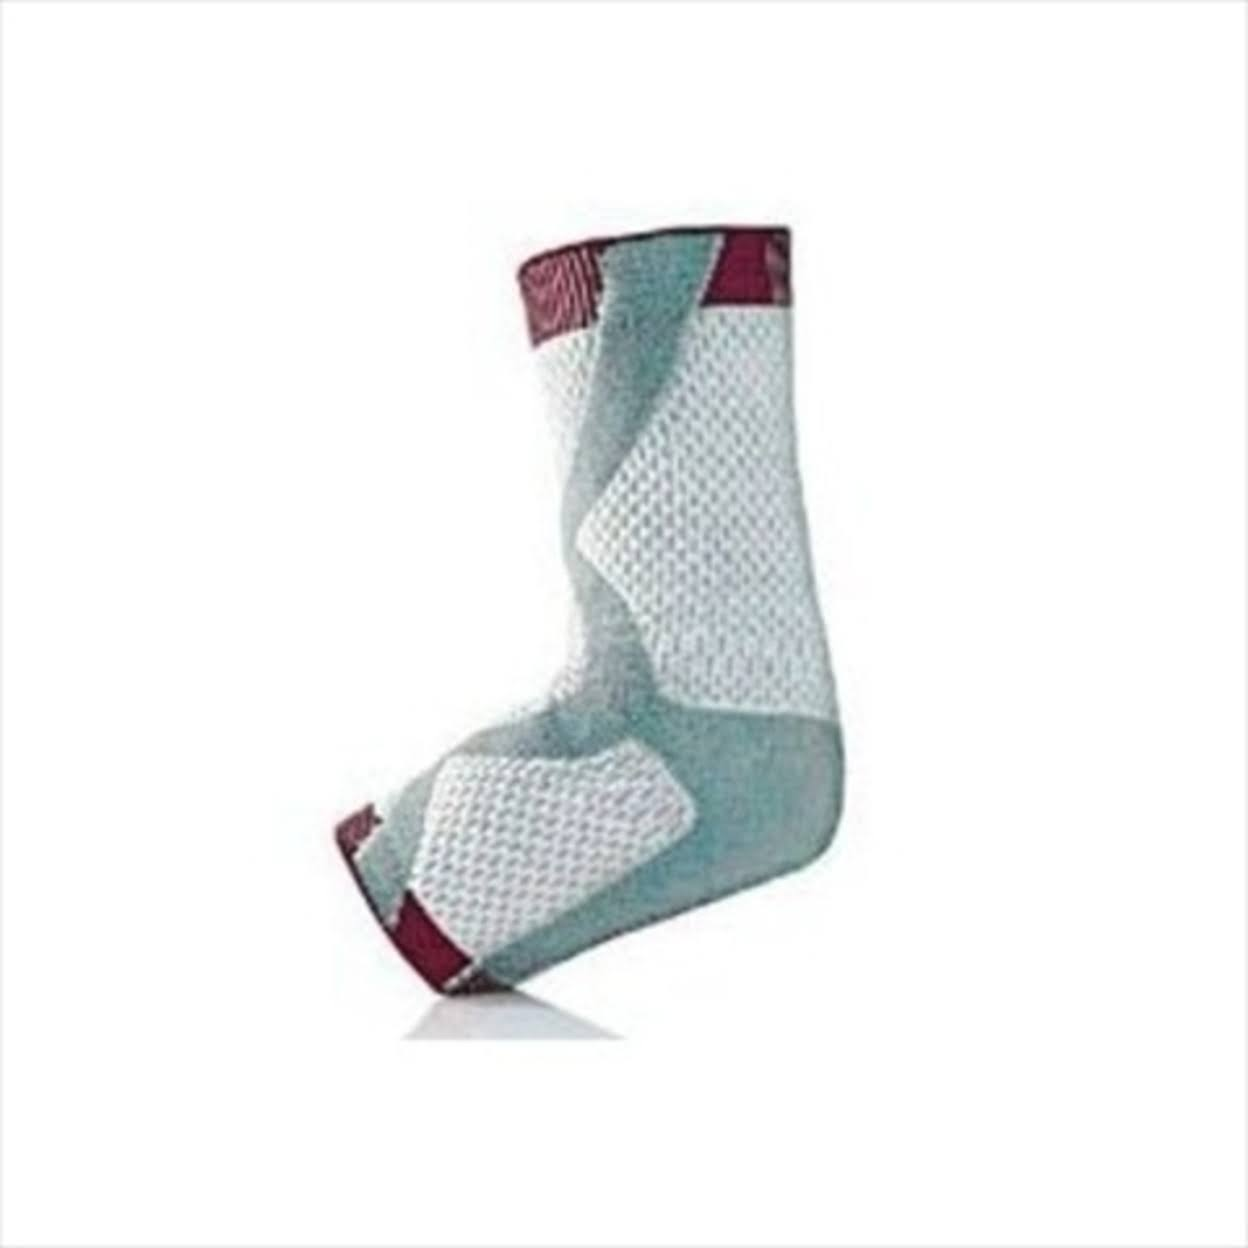 Fla Prolite 3D Ankle Support Small White/Gray Left